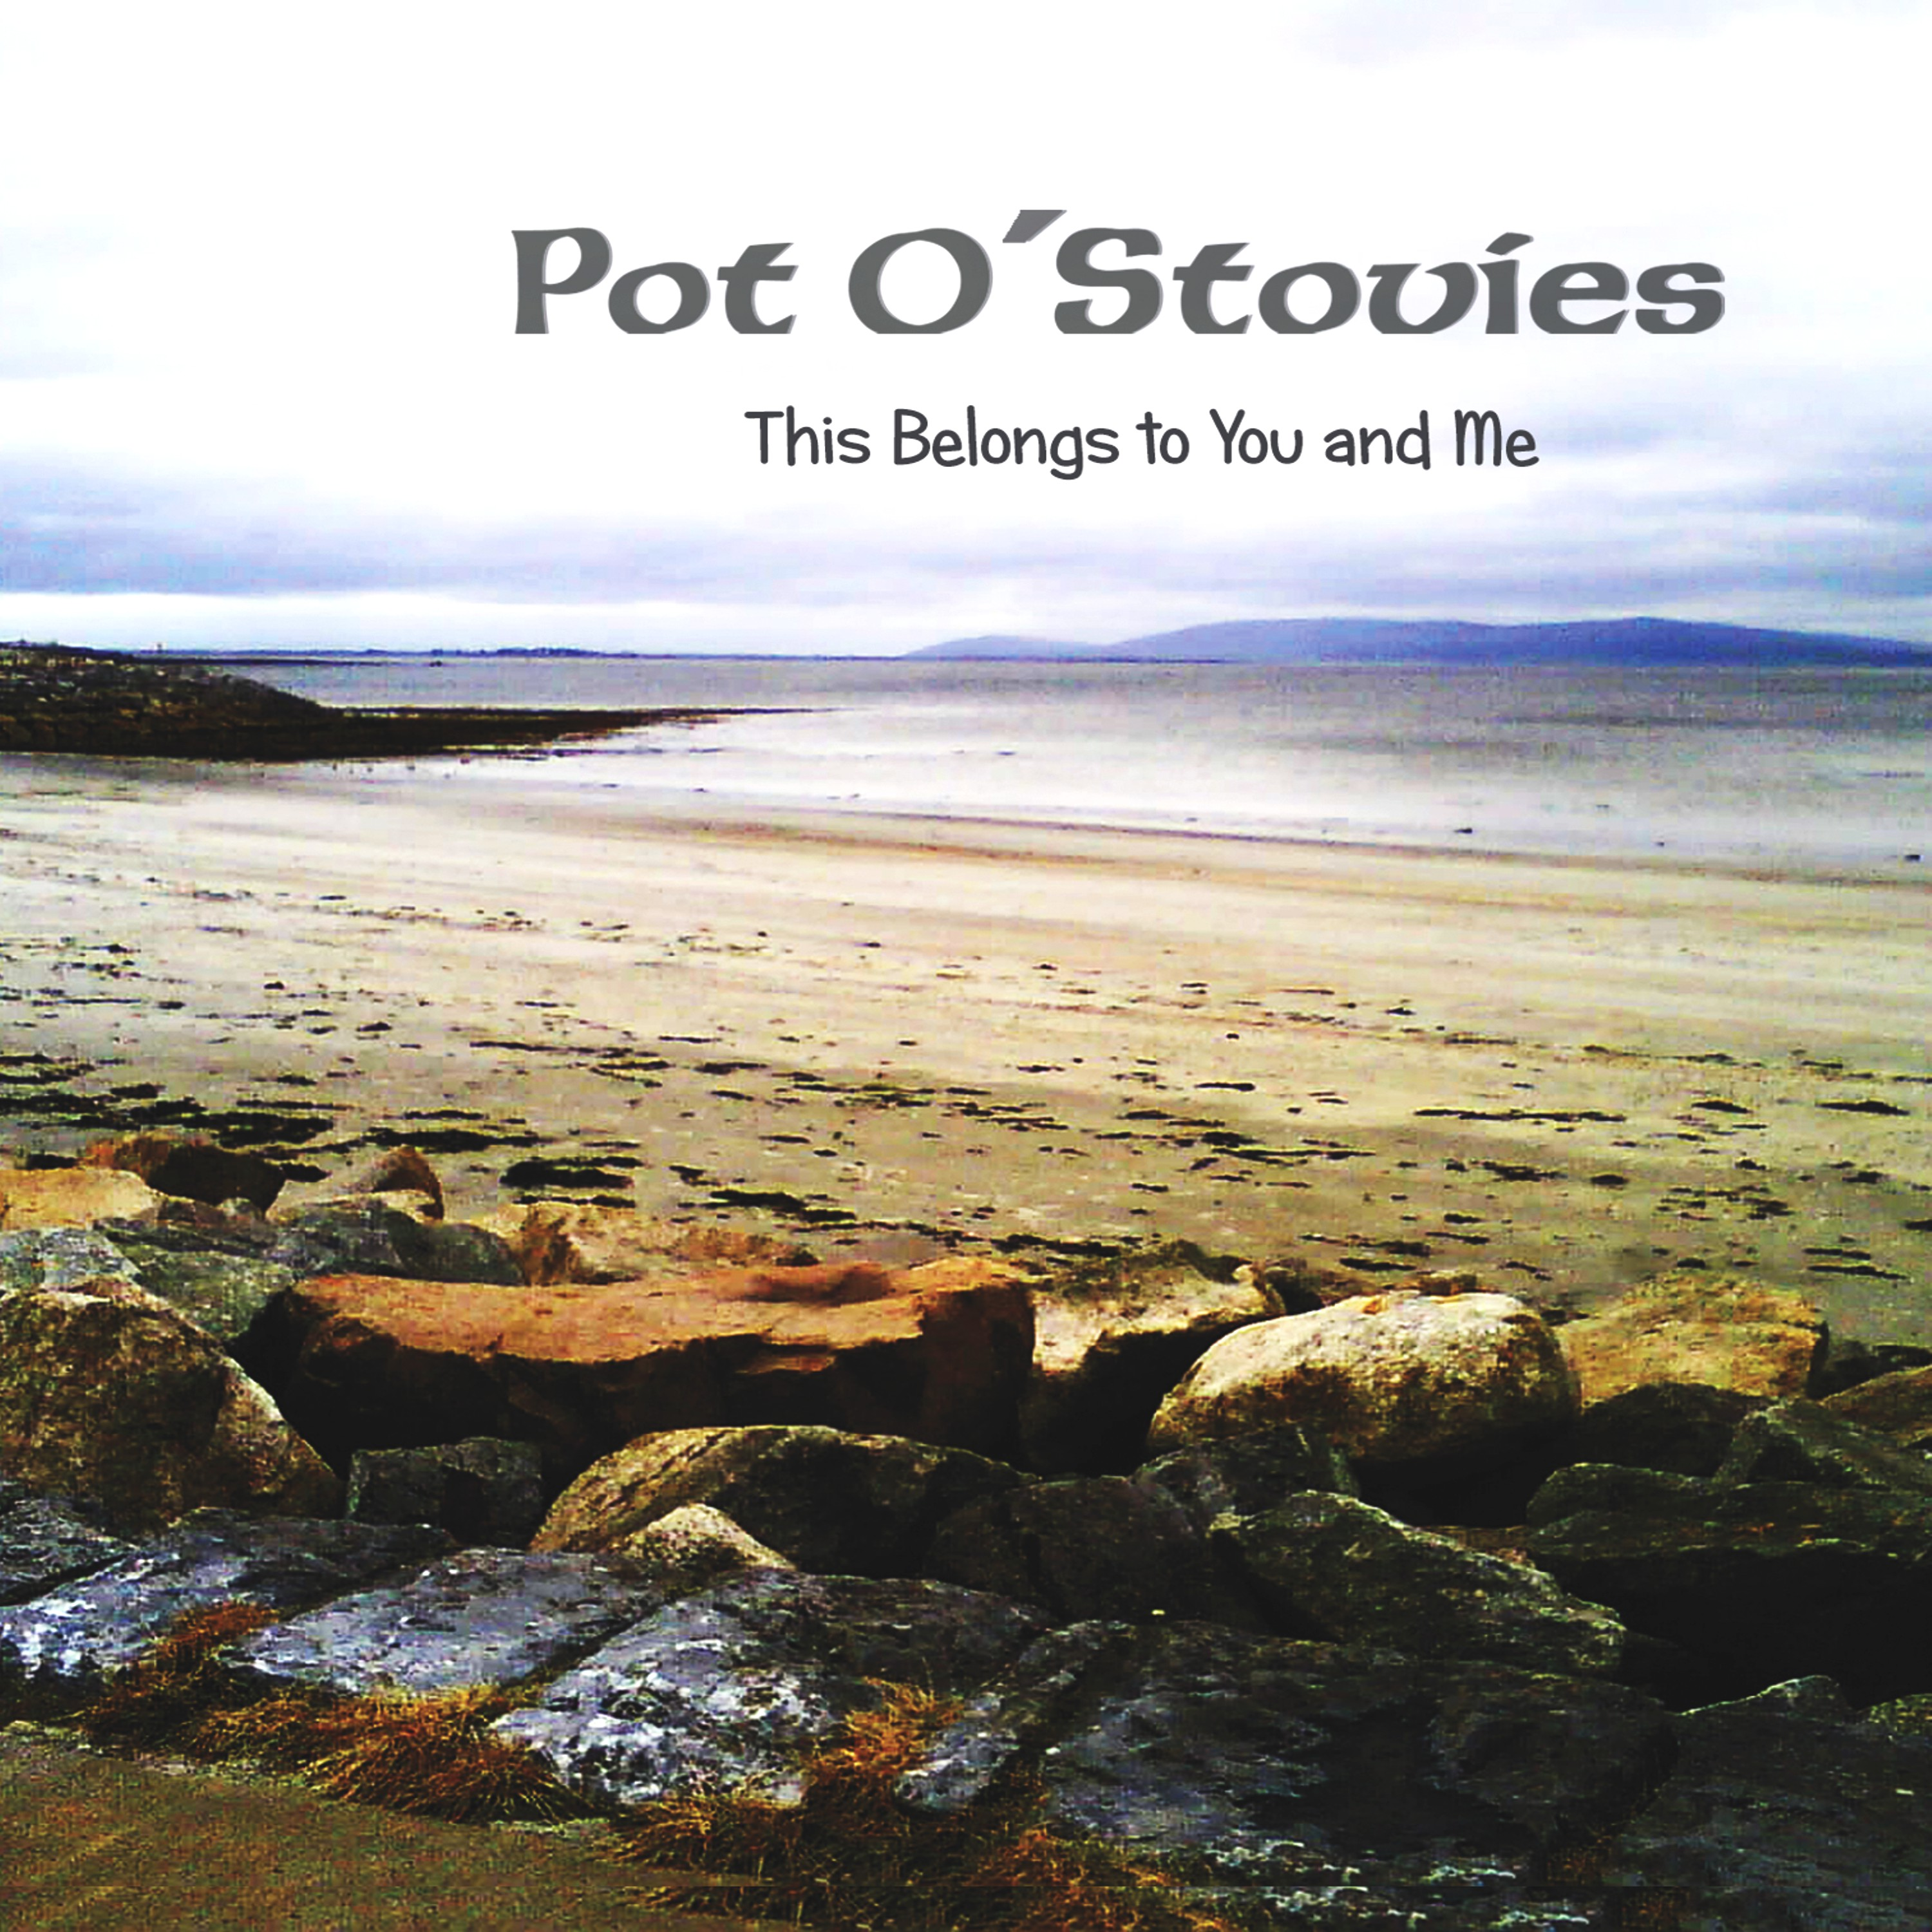 Pot O'Stovies - This Belongs to You and Me